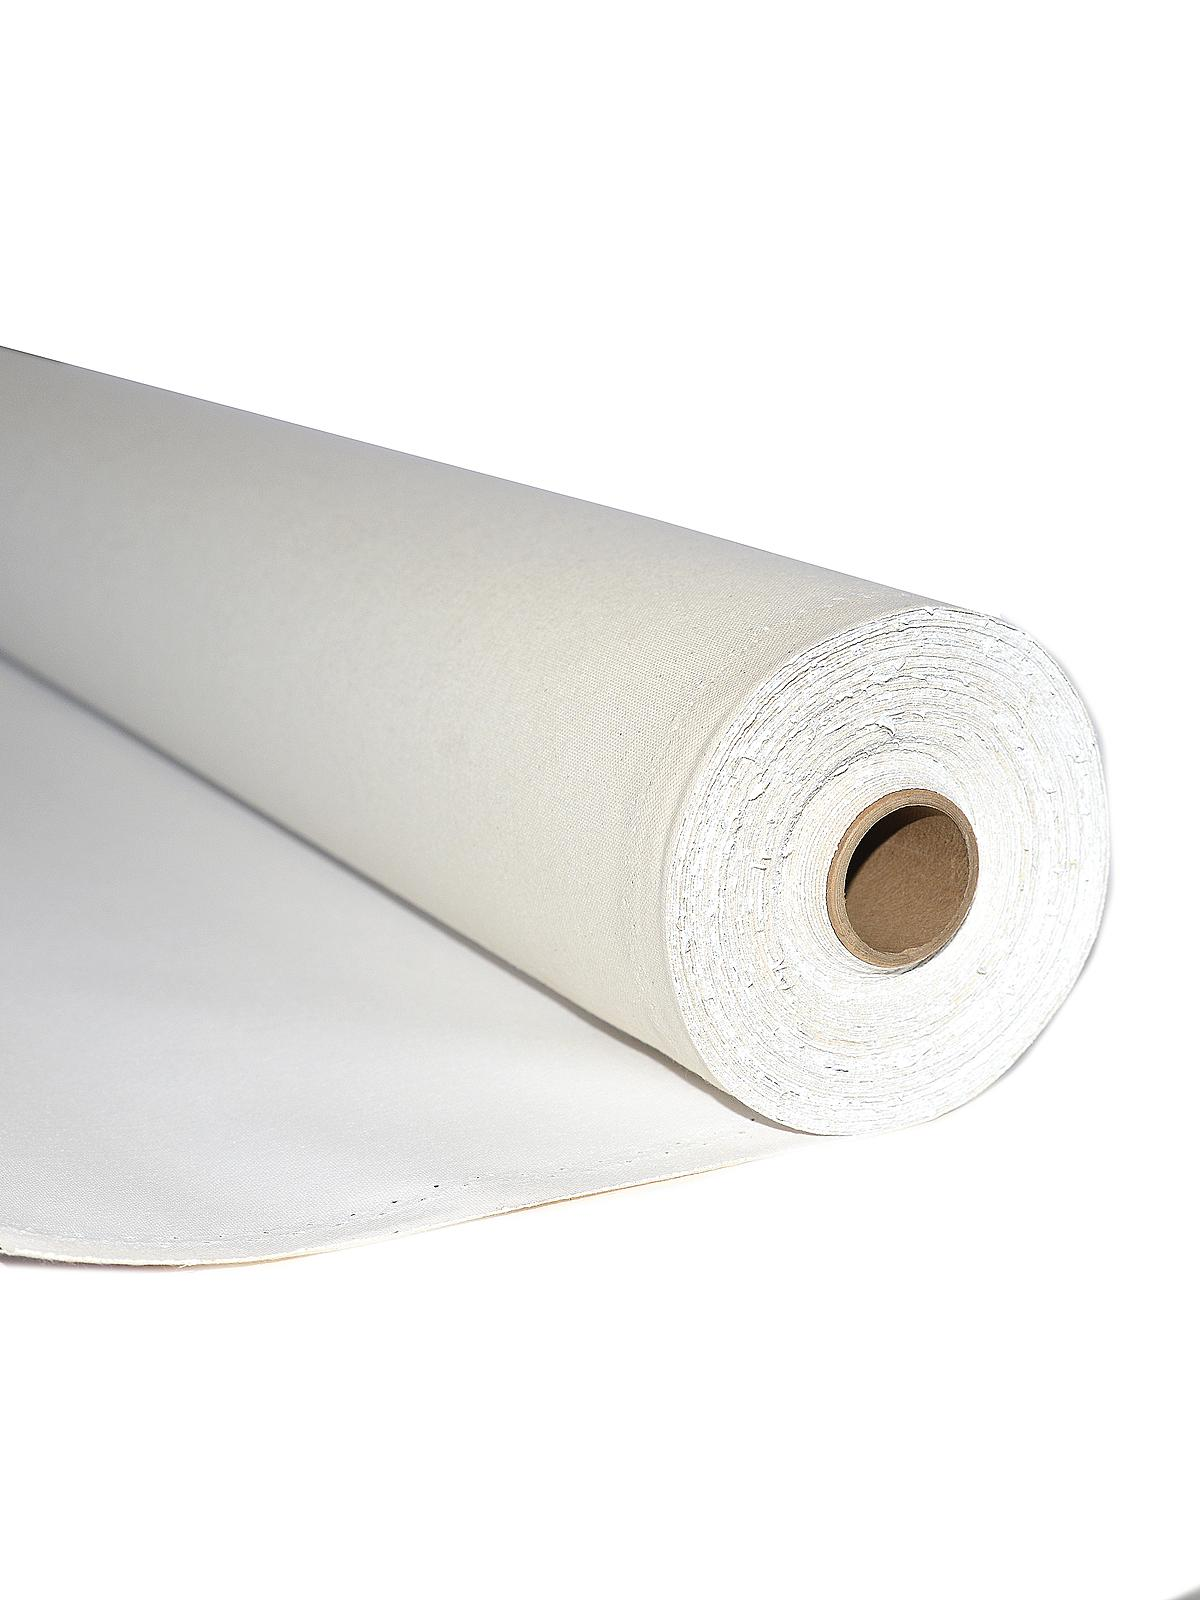 Acrylic Primed Cotton Duck Canvas – Tara Style 70